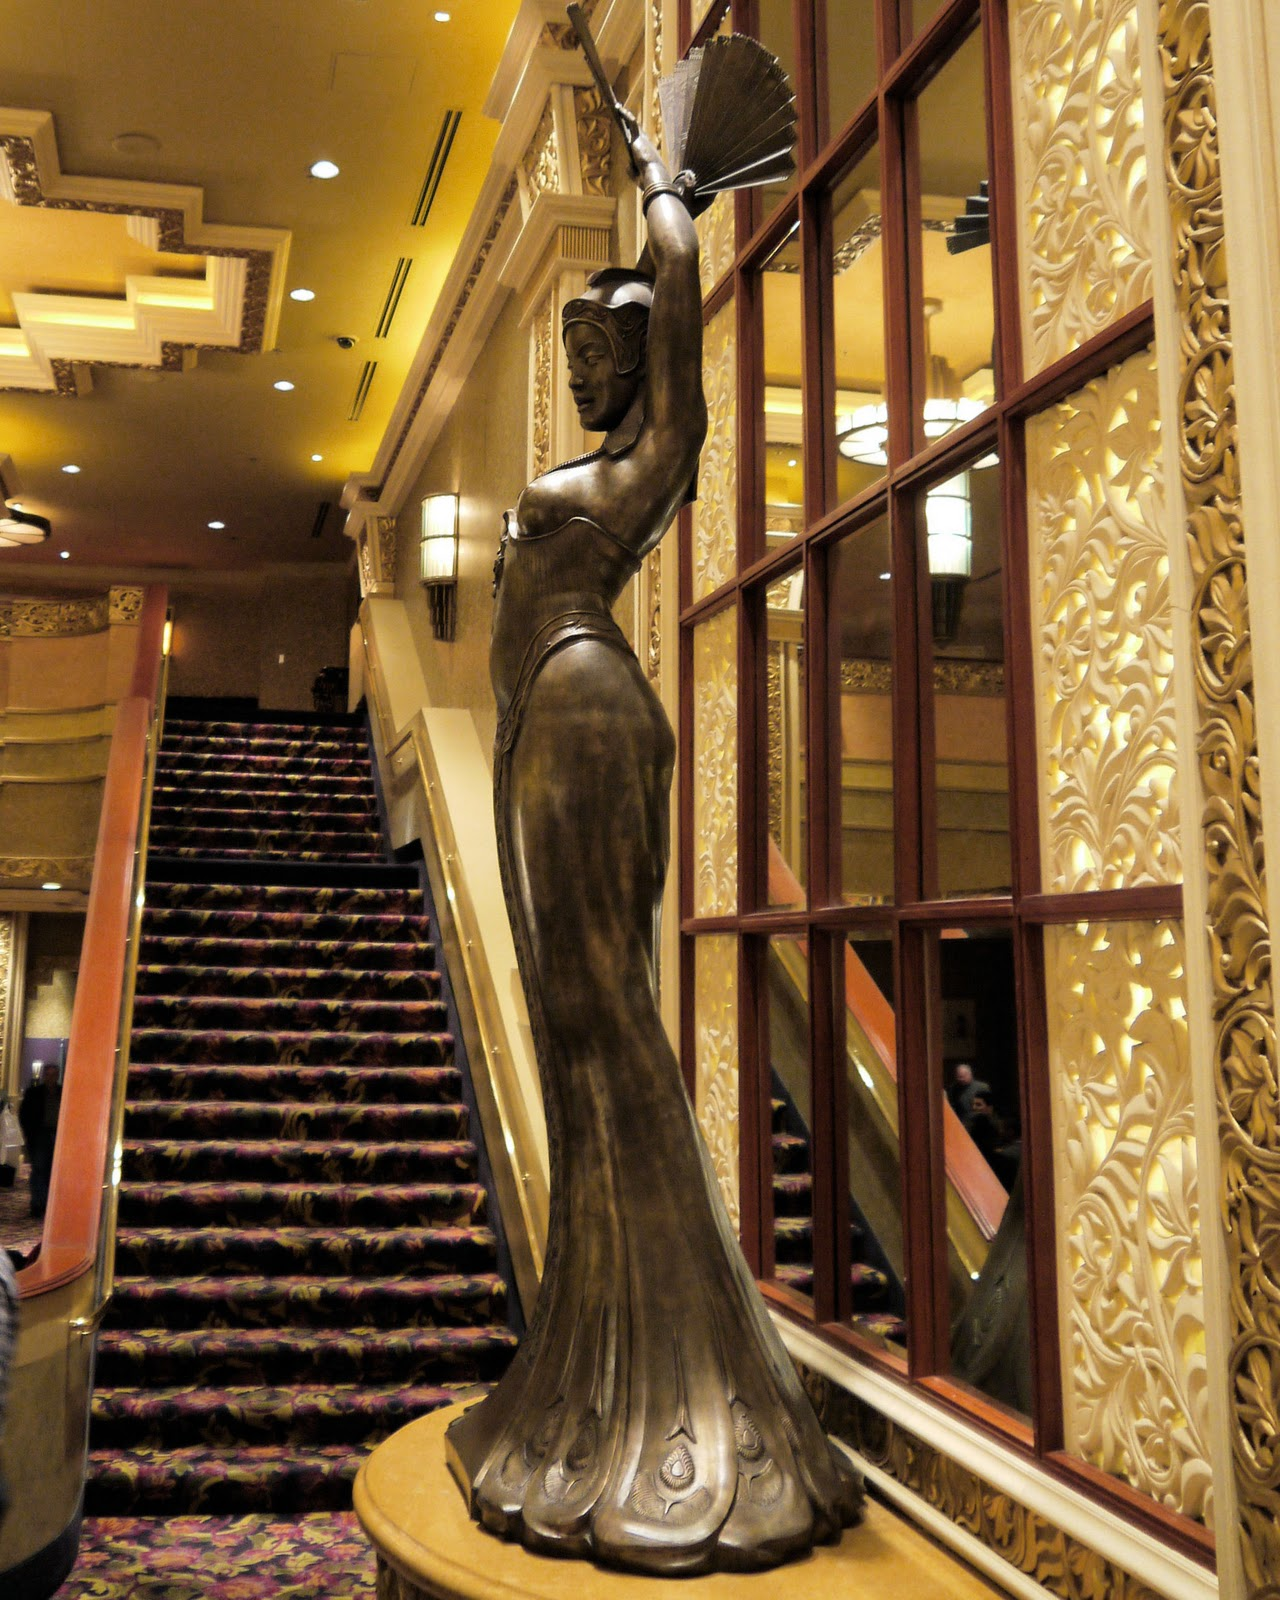 Mandalay Bay 2 Bedroom Suite: Ken's Photo Gallery: The Lion King Theater At Mandalay Bay